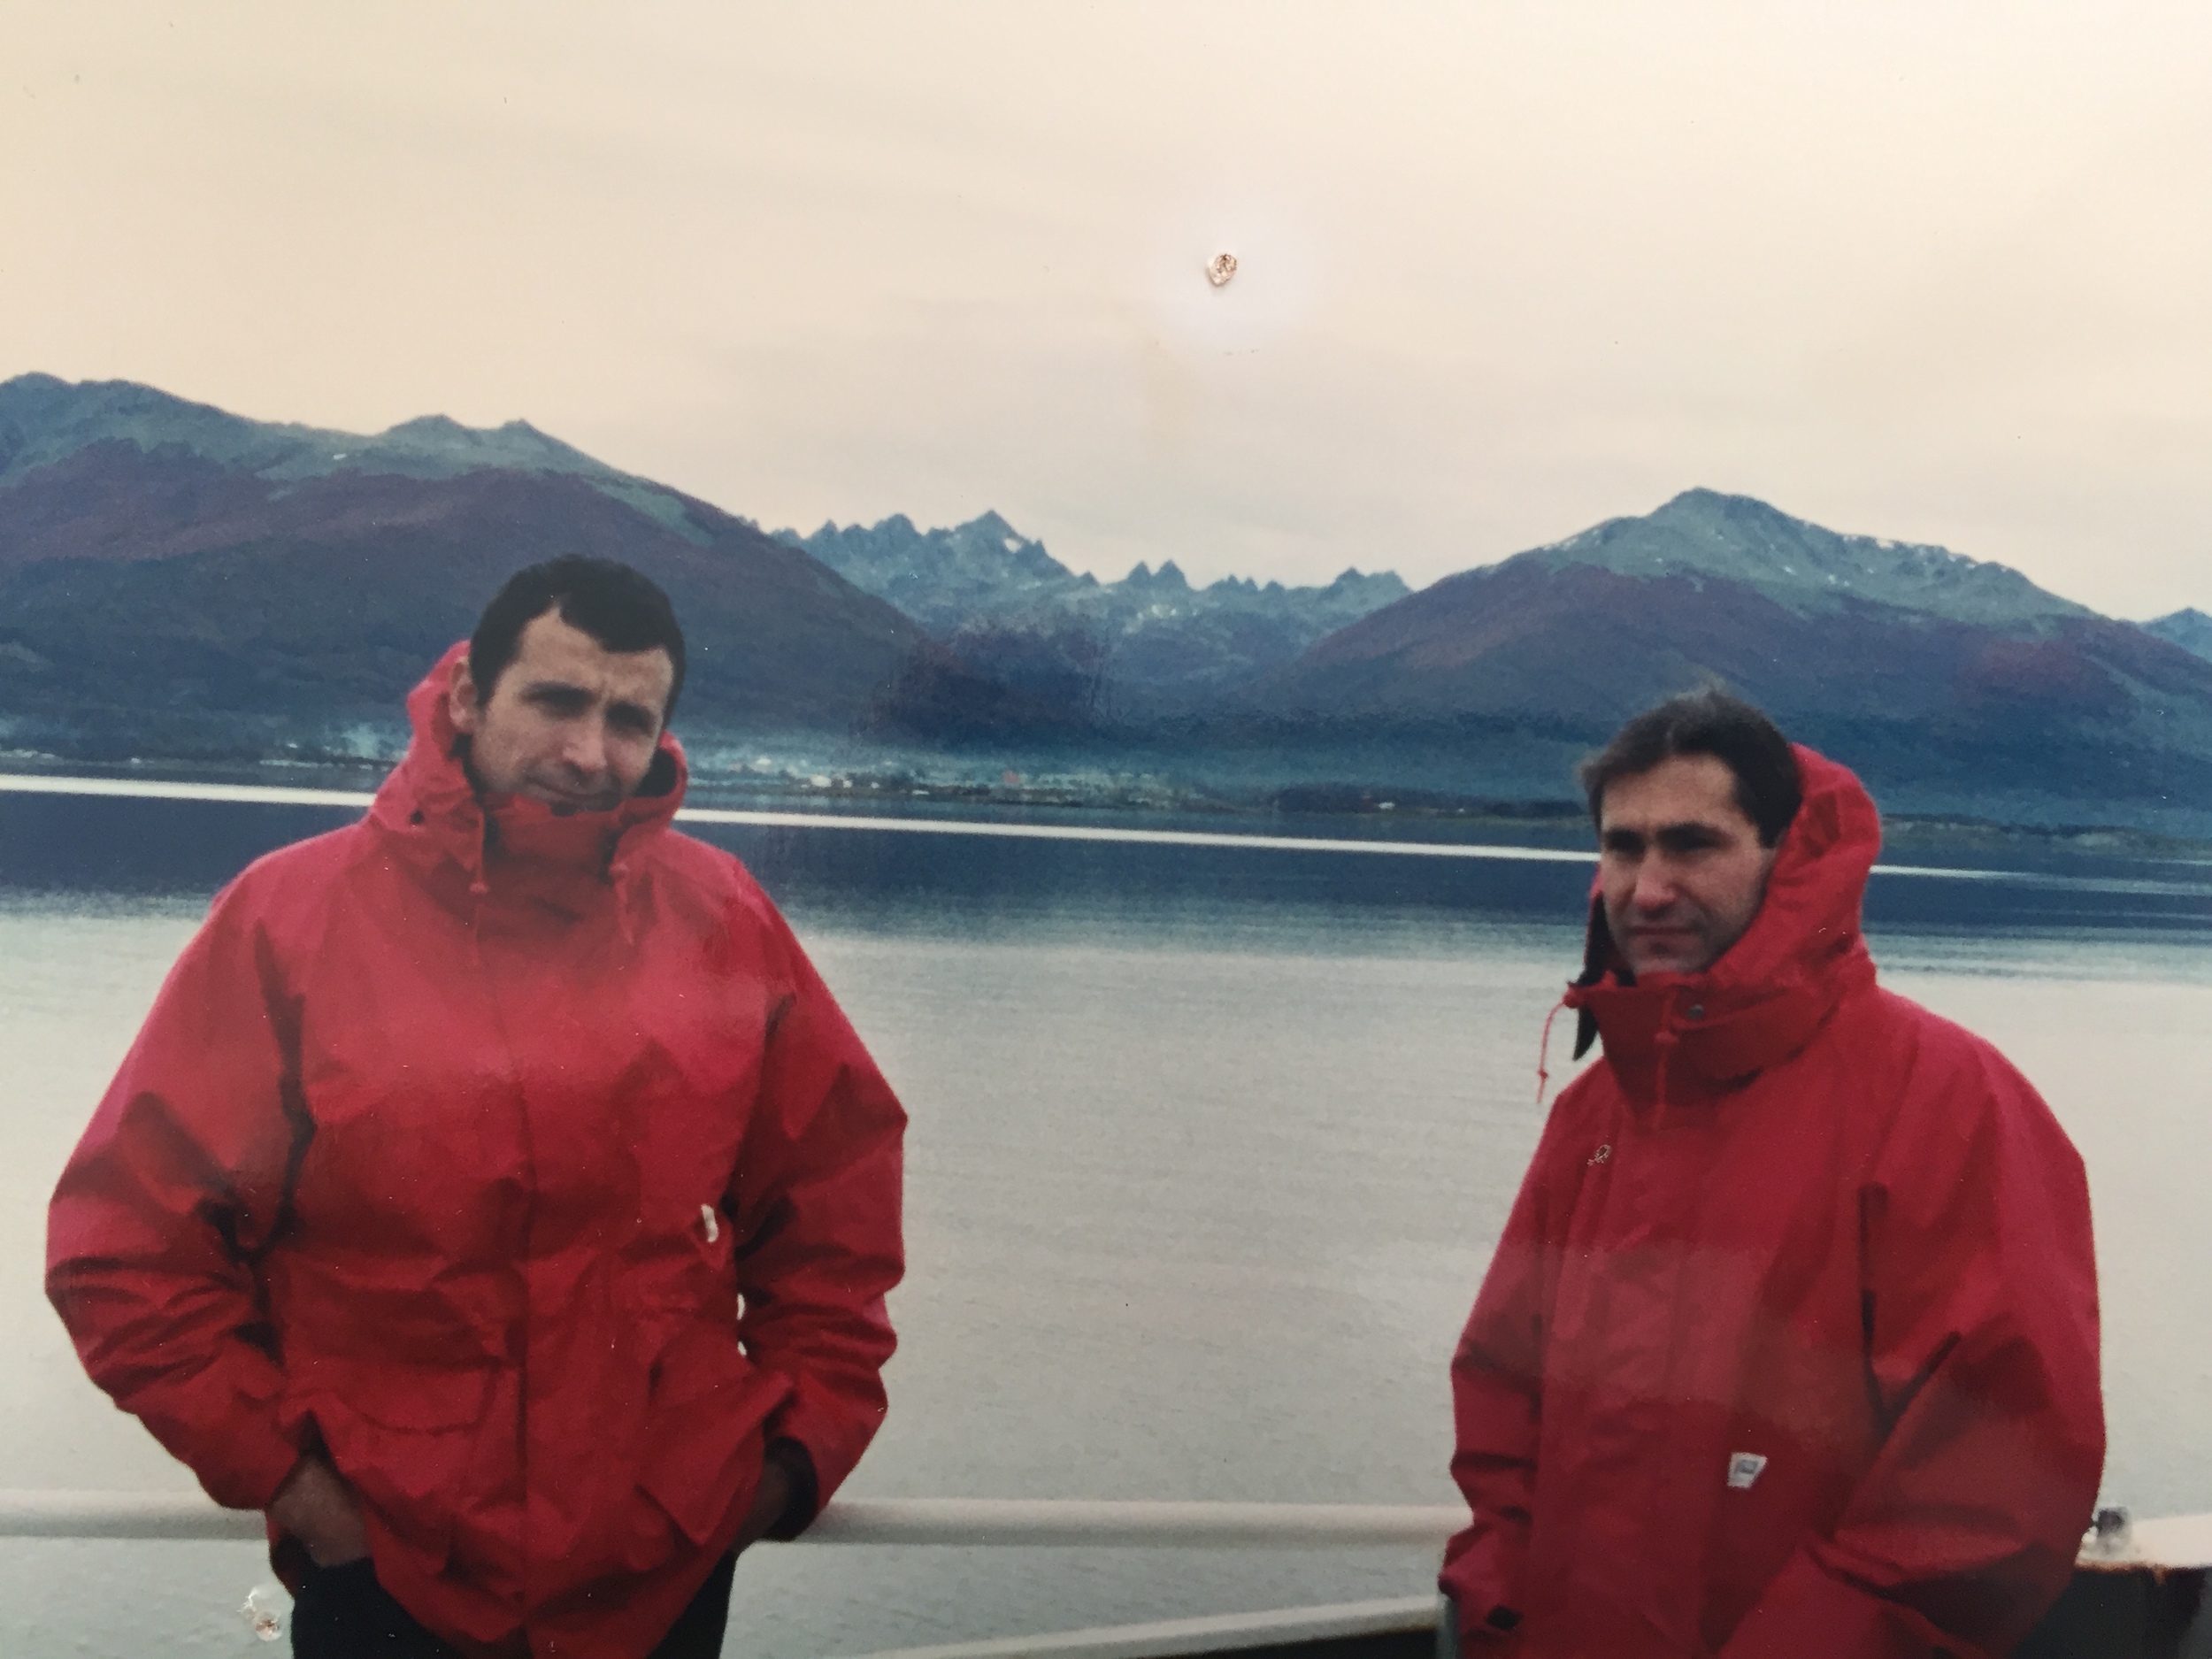 Getting ready to land in Ushuaia after 7 weeks at sea! (early 90s)